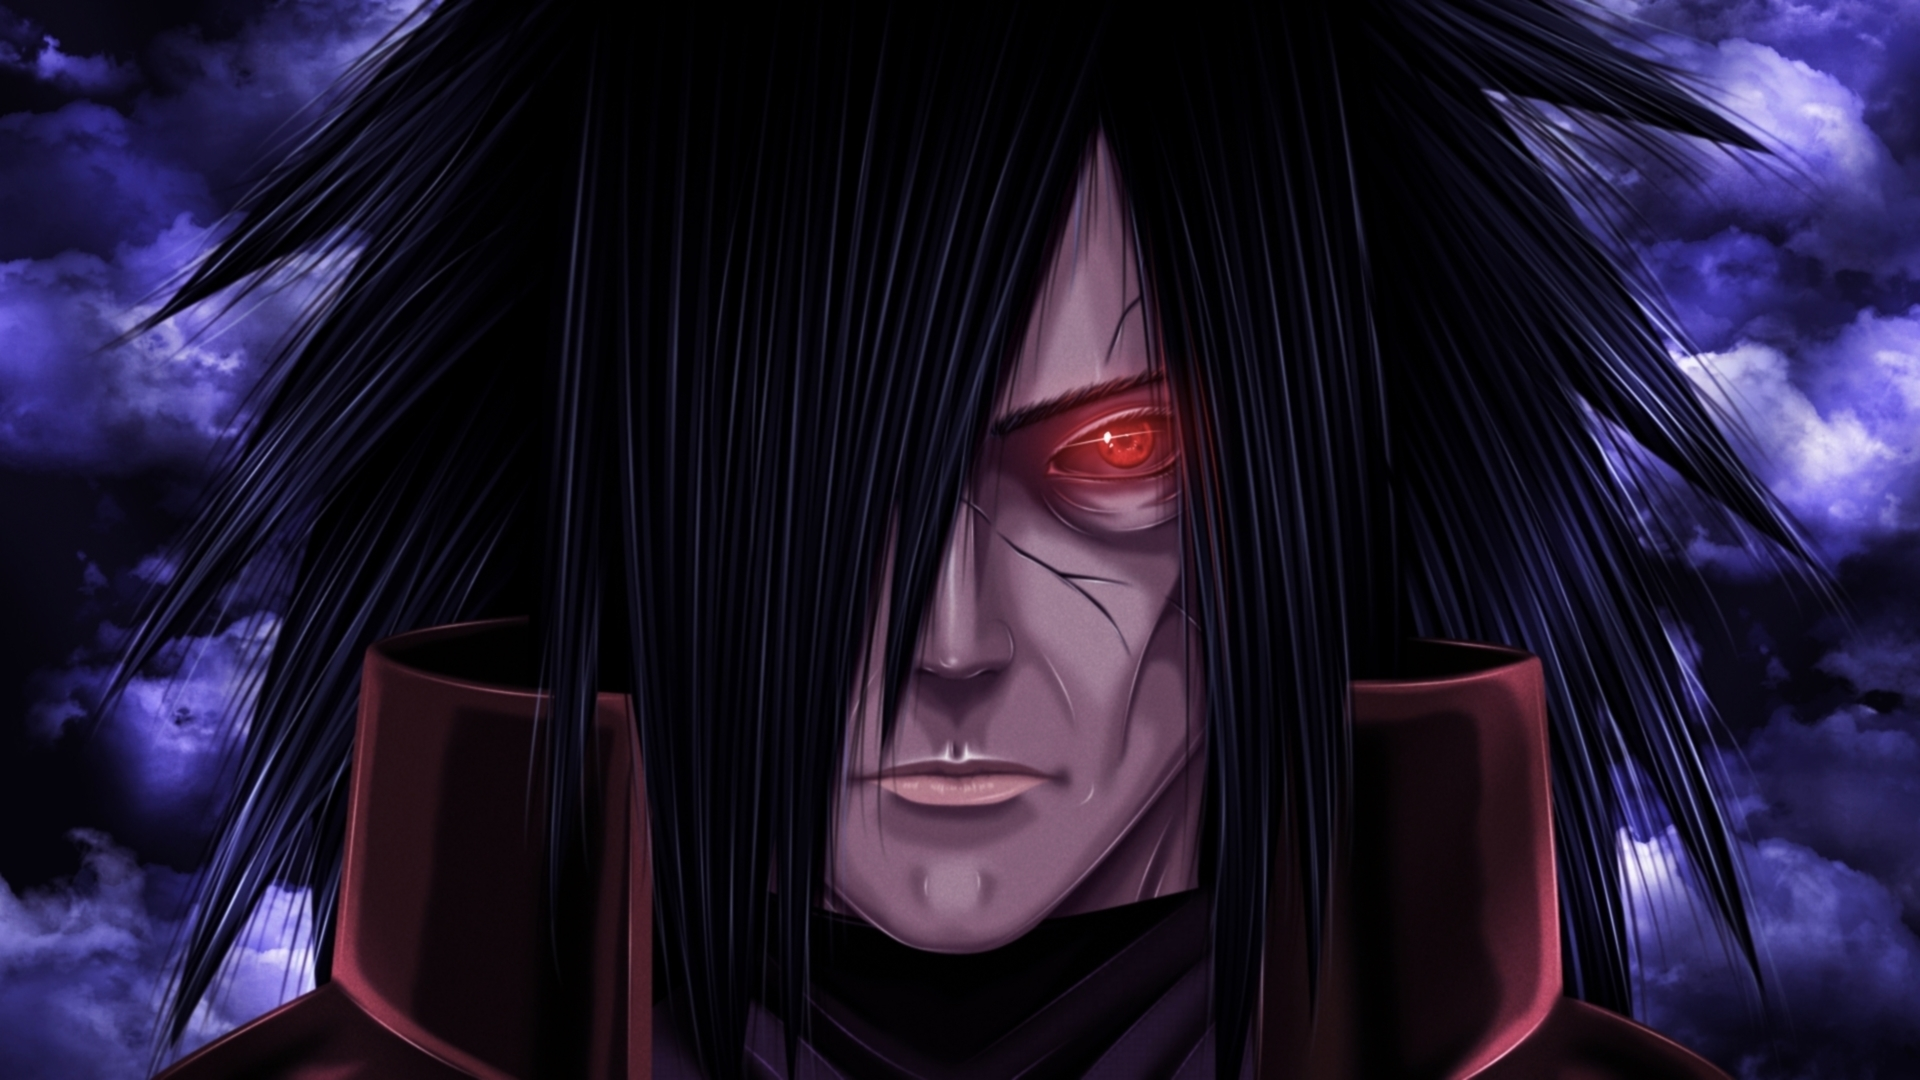 Download Wallpaper 1920x1080 Madara uchiha, Uchiha, Naruto anime